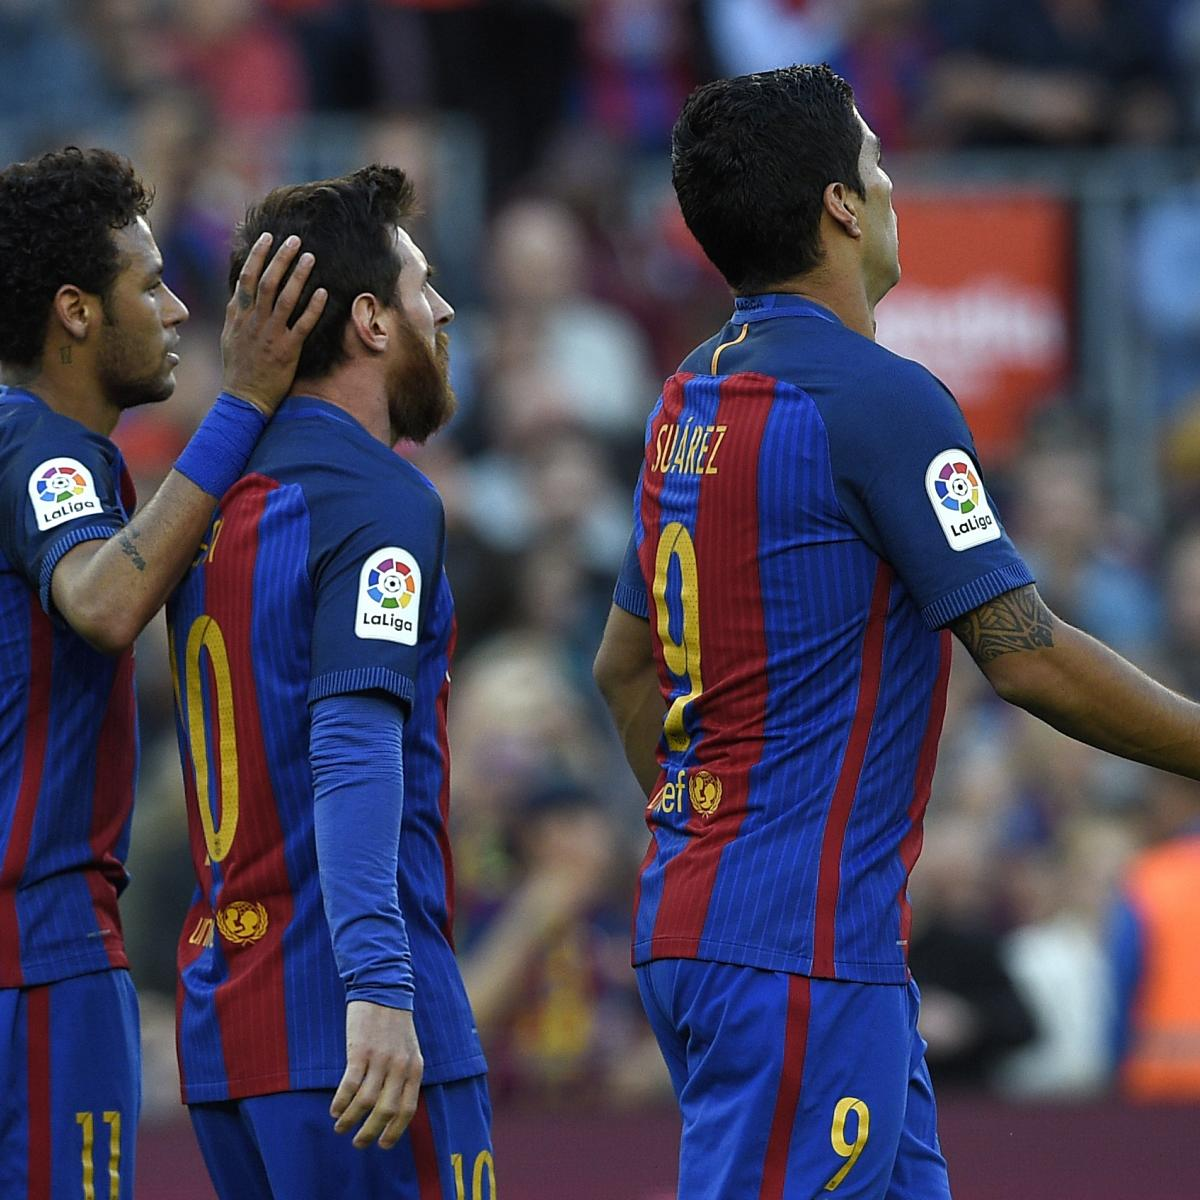 La liga results 2017 scores and updated table after saturday 39 s week 36 matches bleacher - La liga latest results and table ...